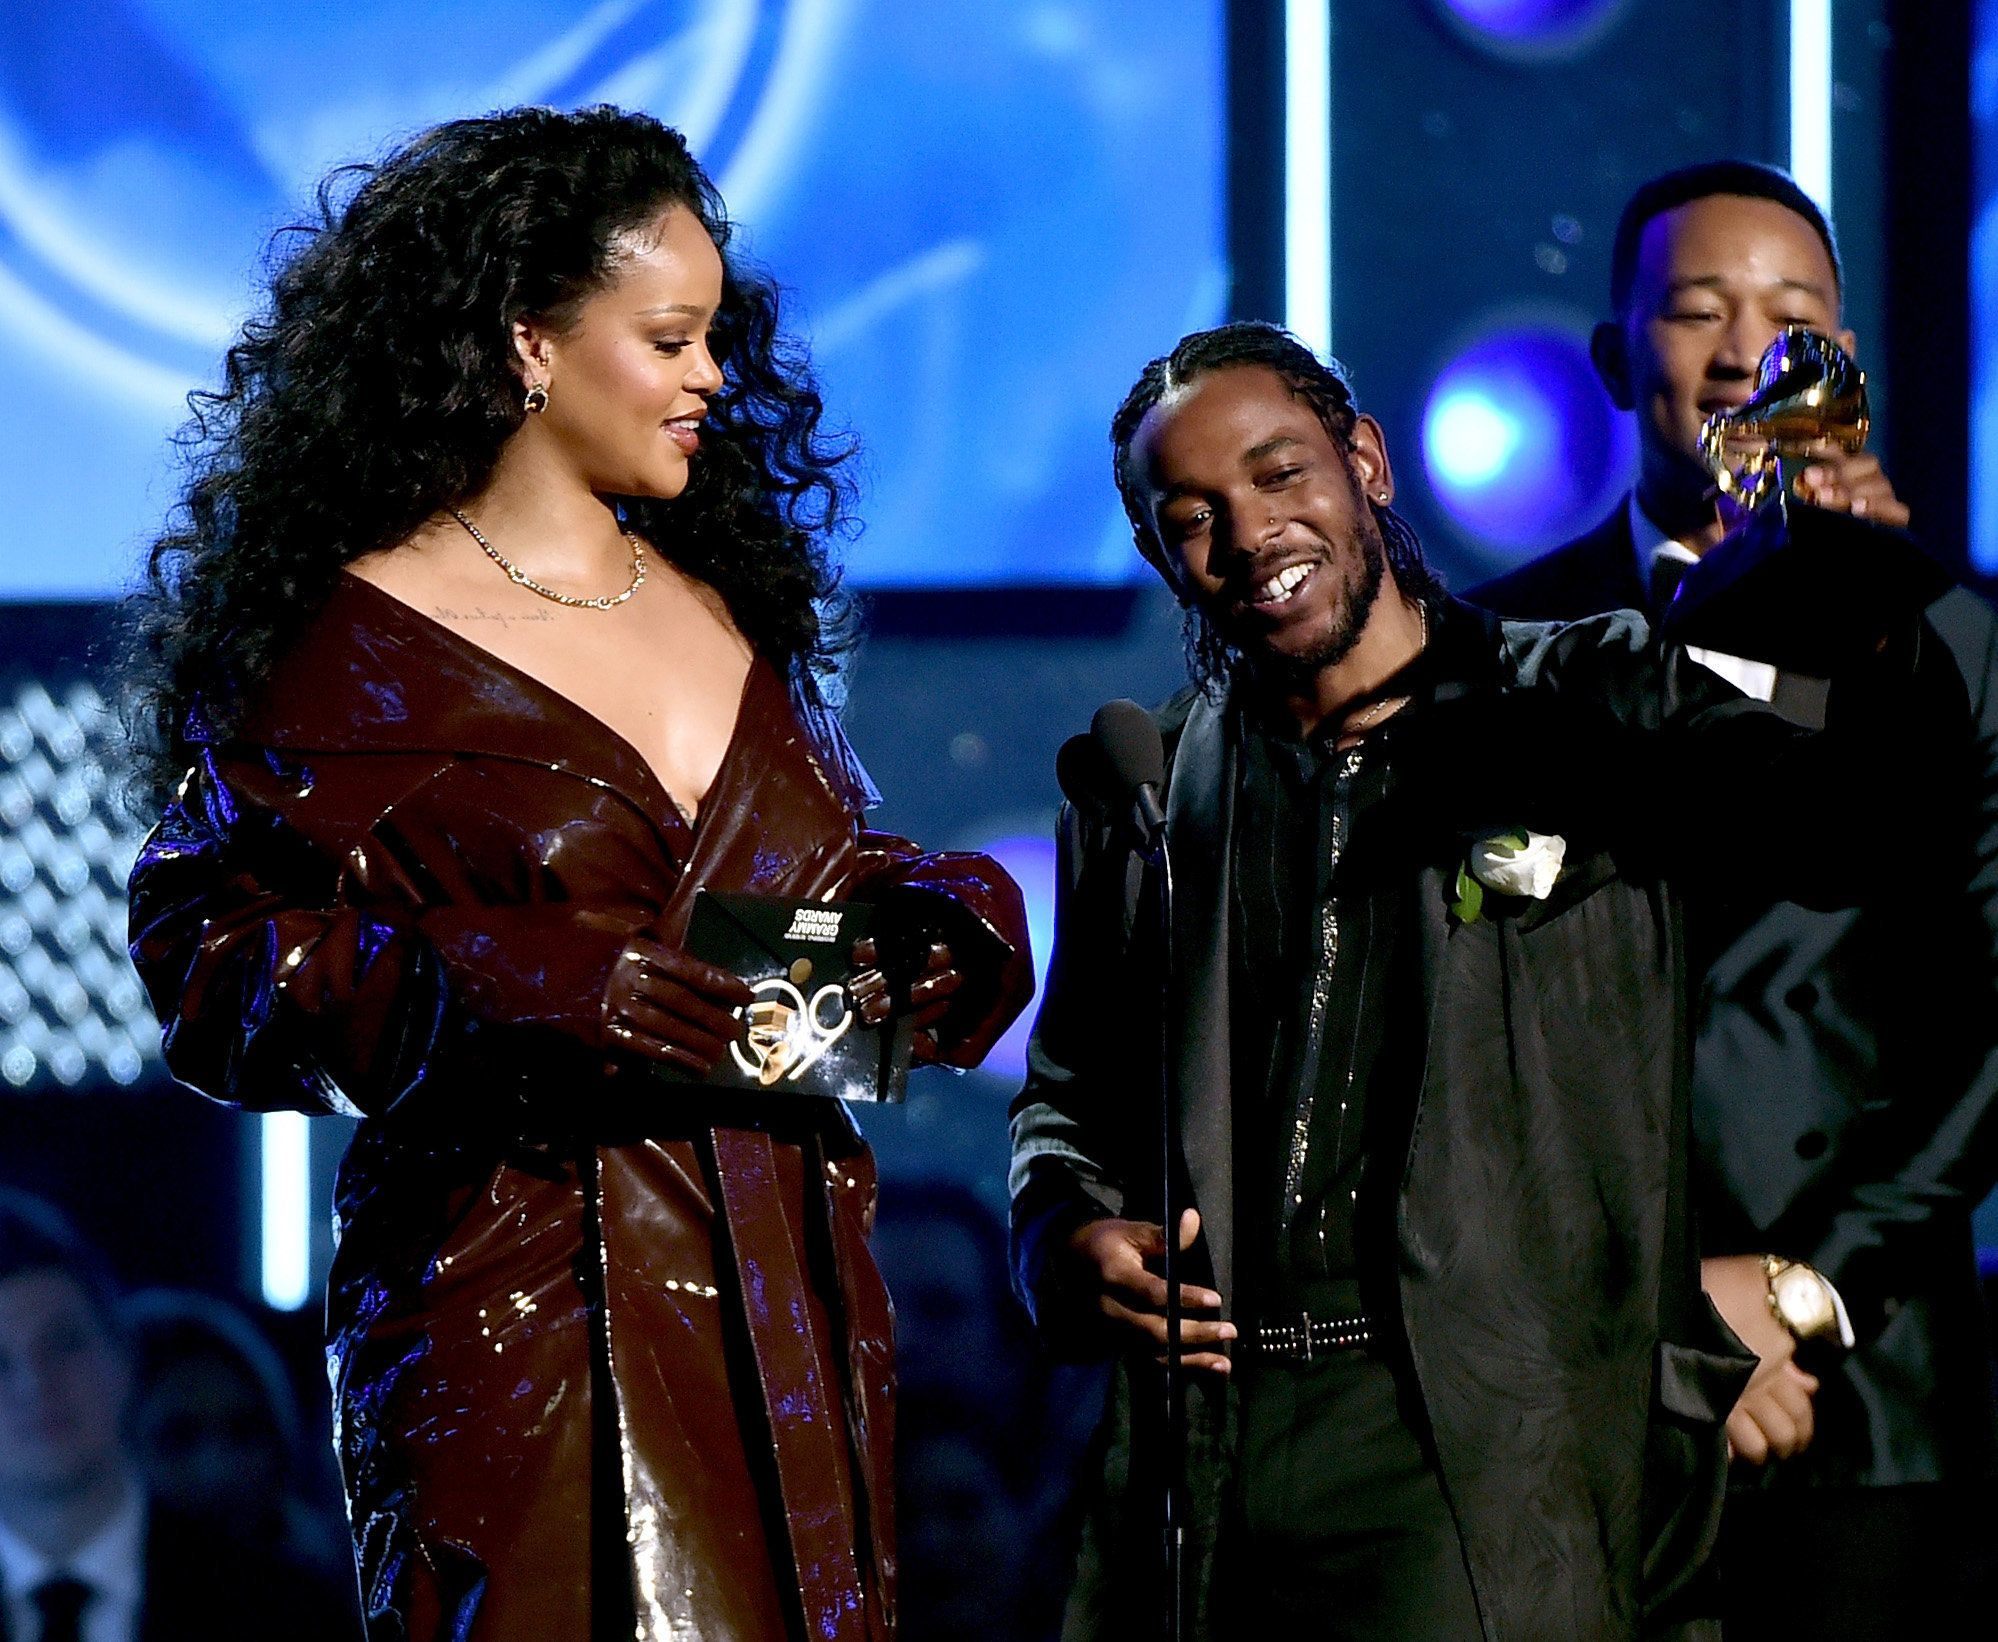 Grammys 2018: DJ Khaled, Rihanna and Bryson Tiller blast through 'Wild Thoughts'